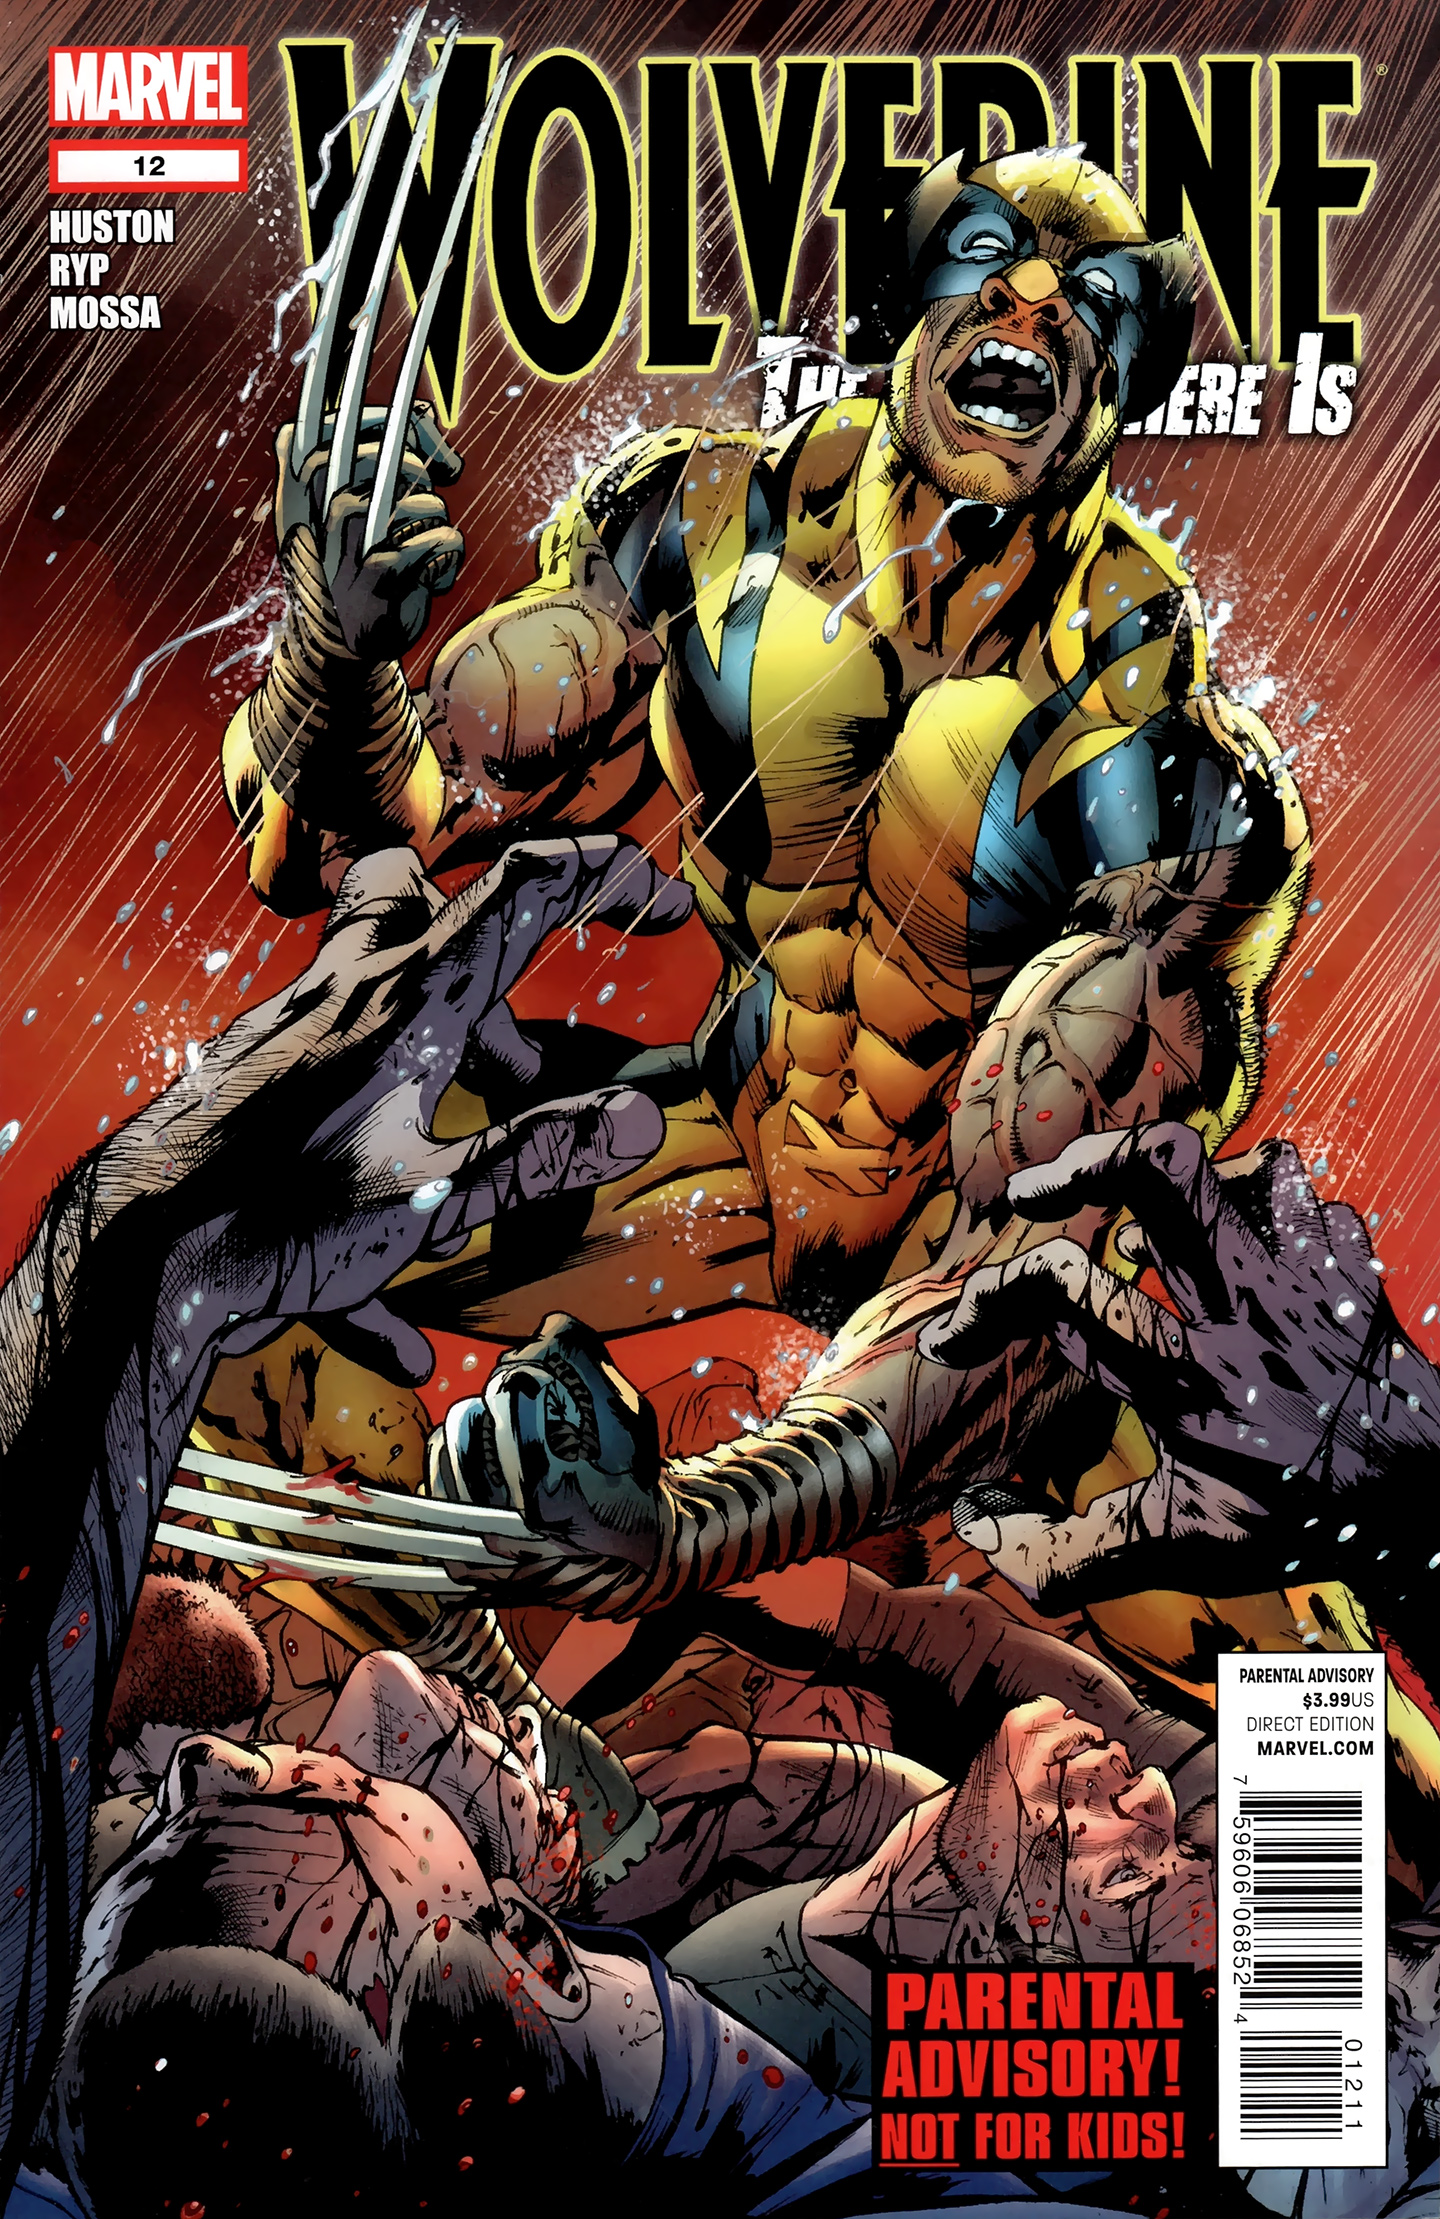 Read online Wolverine: The Best There Is comic -  Issue #12 - 1